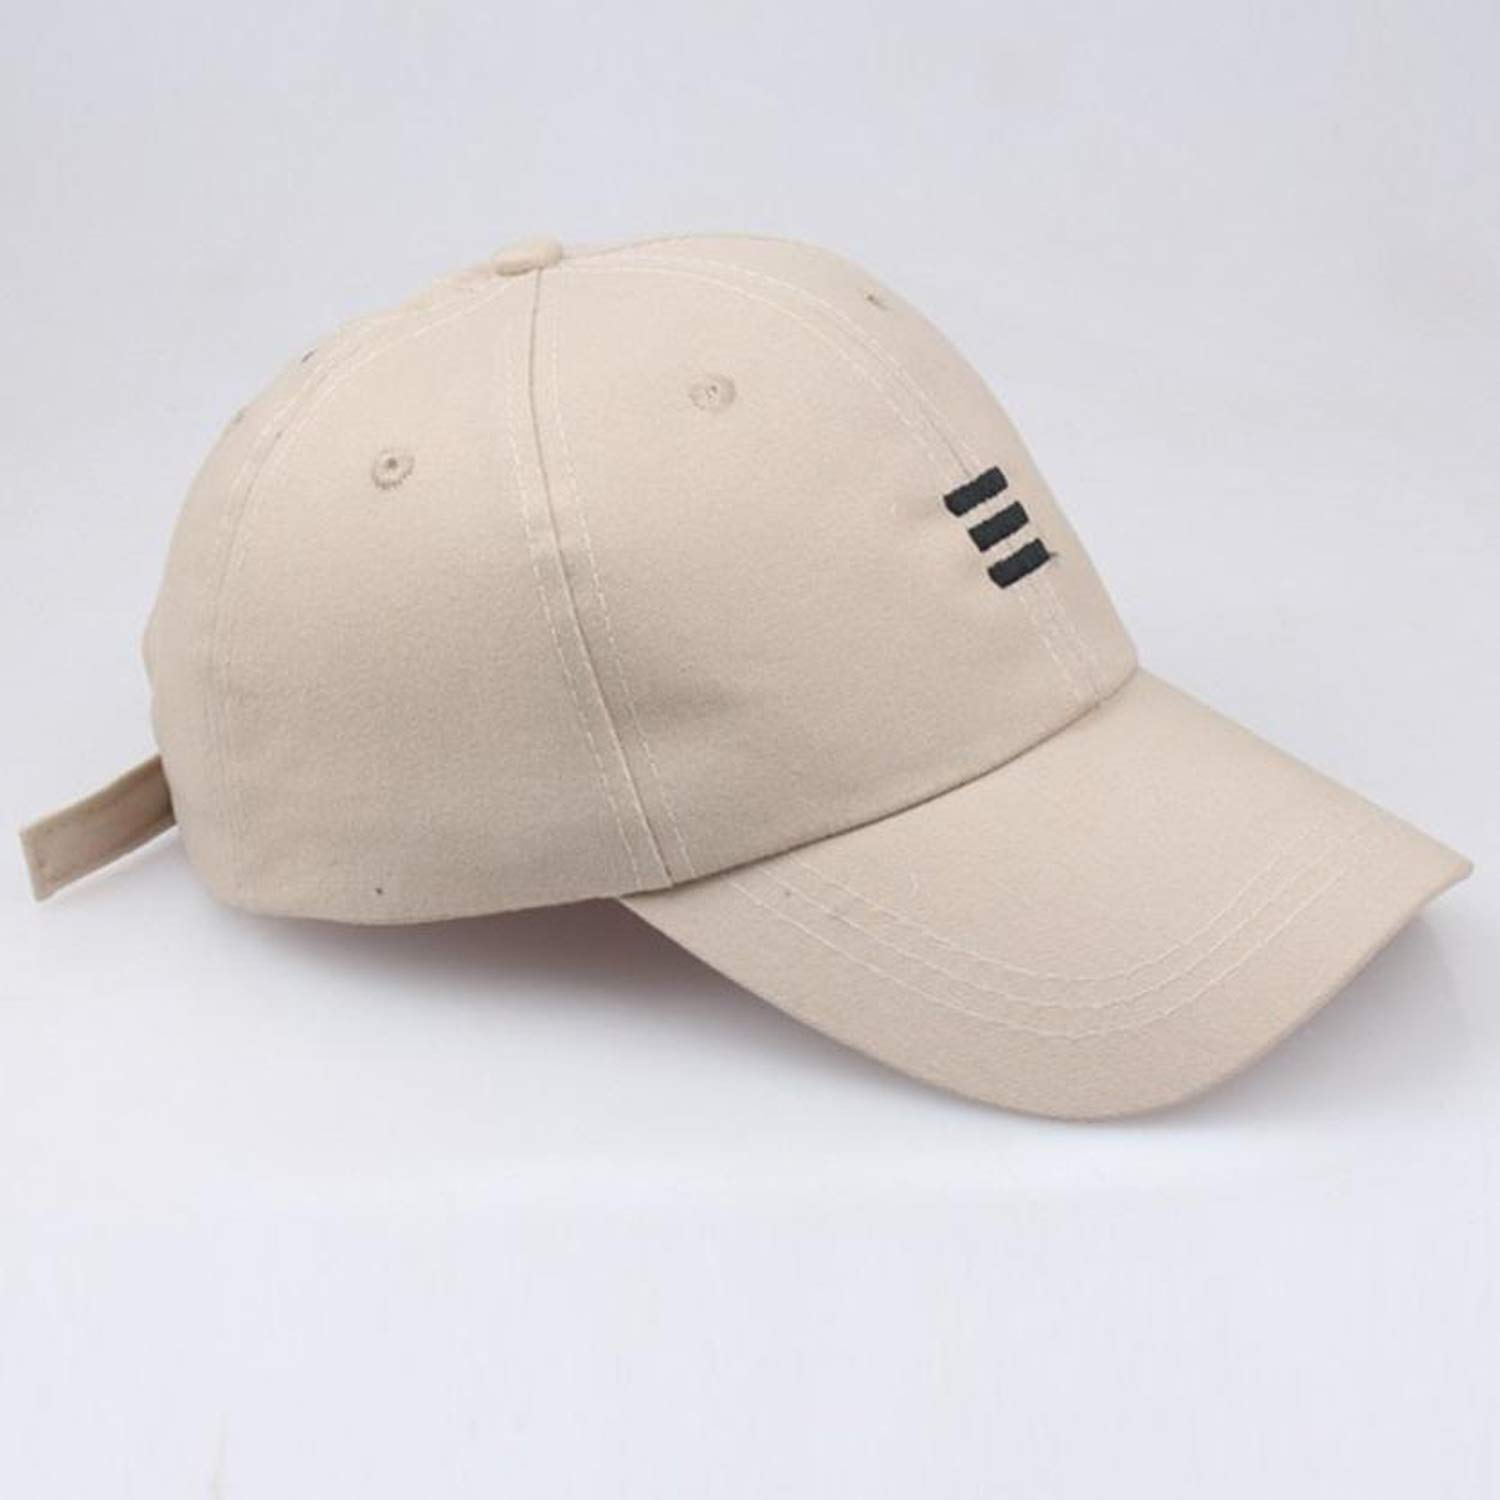 Ron Kite Hiphop Cap Fashion Embroidery Adjustable Cap for Male and Female Sunhat Baseball Cap